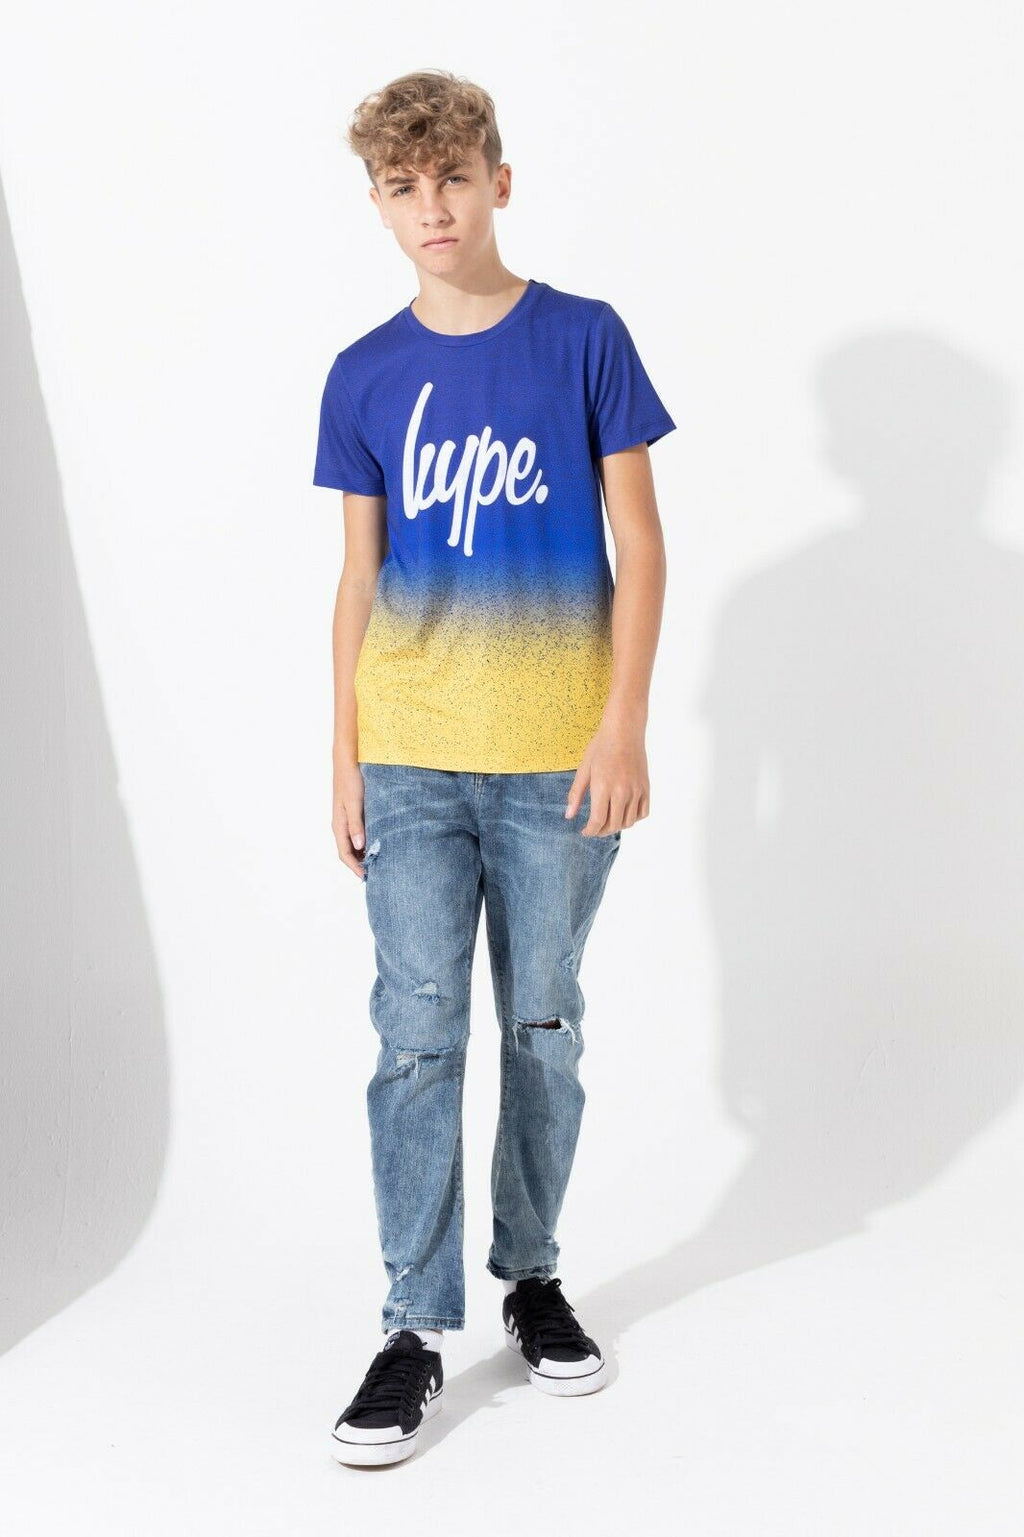 Speckle Fade Blue/Mango Kids T-Shirt